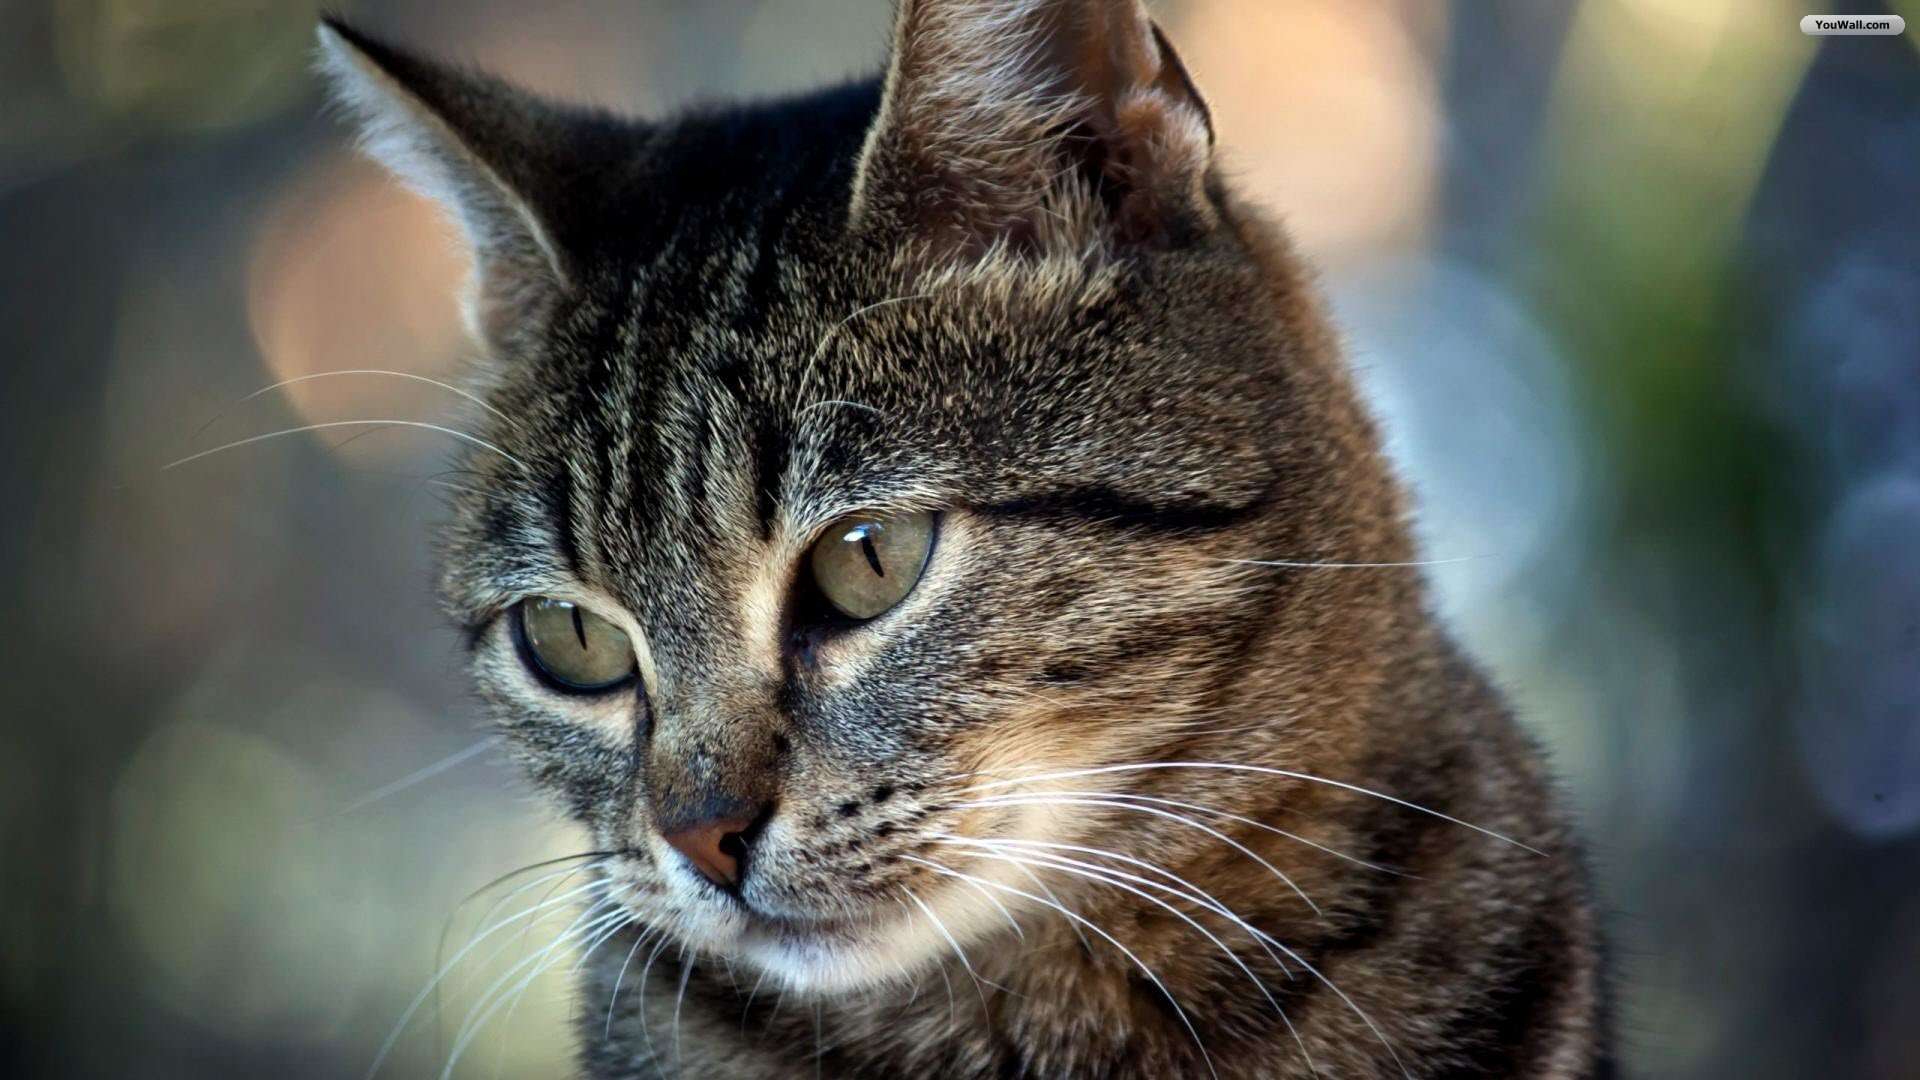 Cute Kitty Wallpapers Download Cat Wallpapers 1920 215 1080 58 Wallpapers Adorable Wallpapers